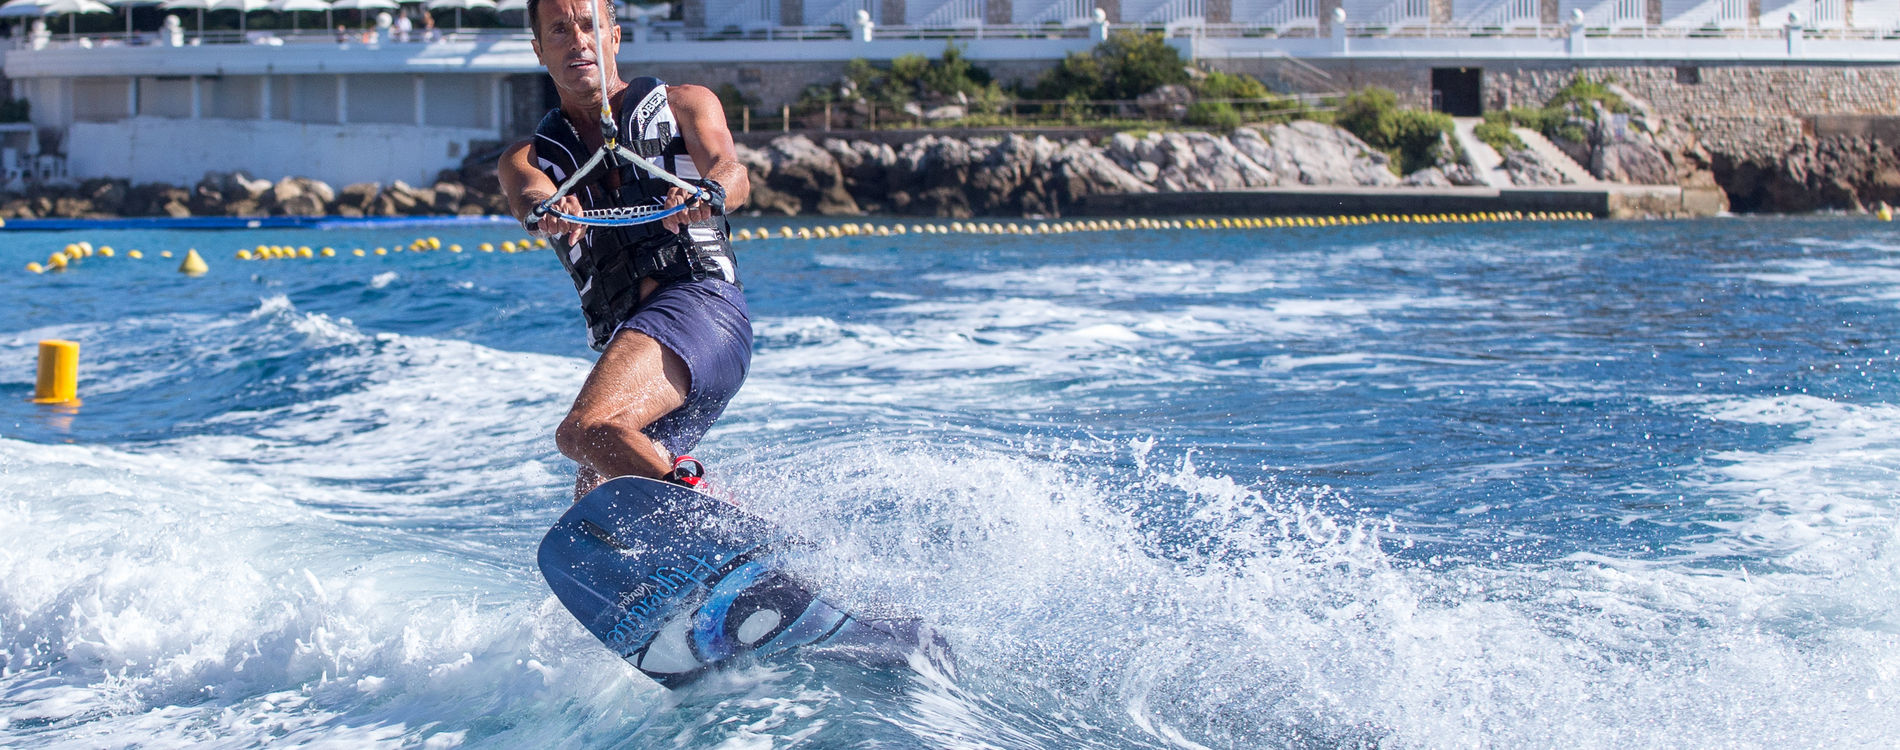 Monte-Carlo Beach - Sports Nautiques